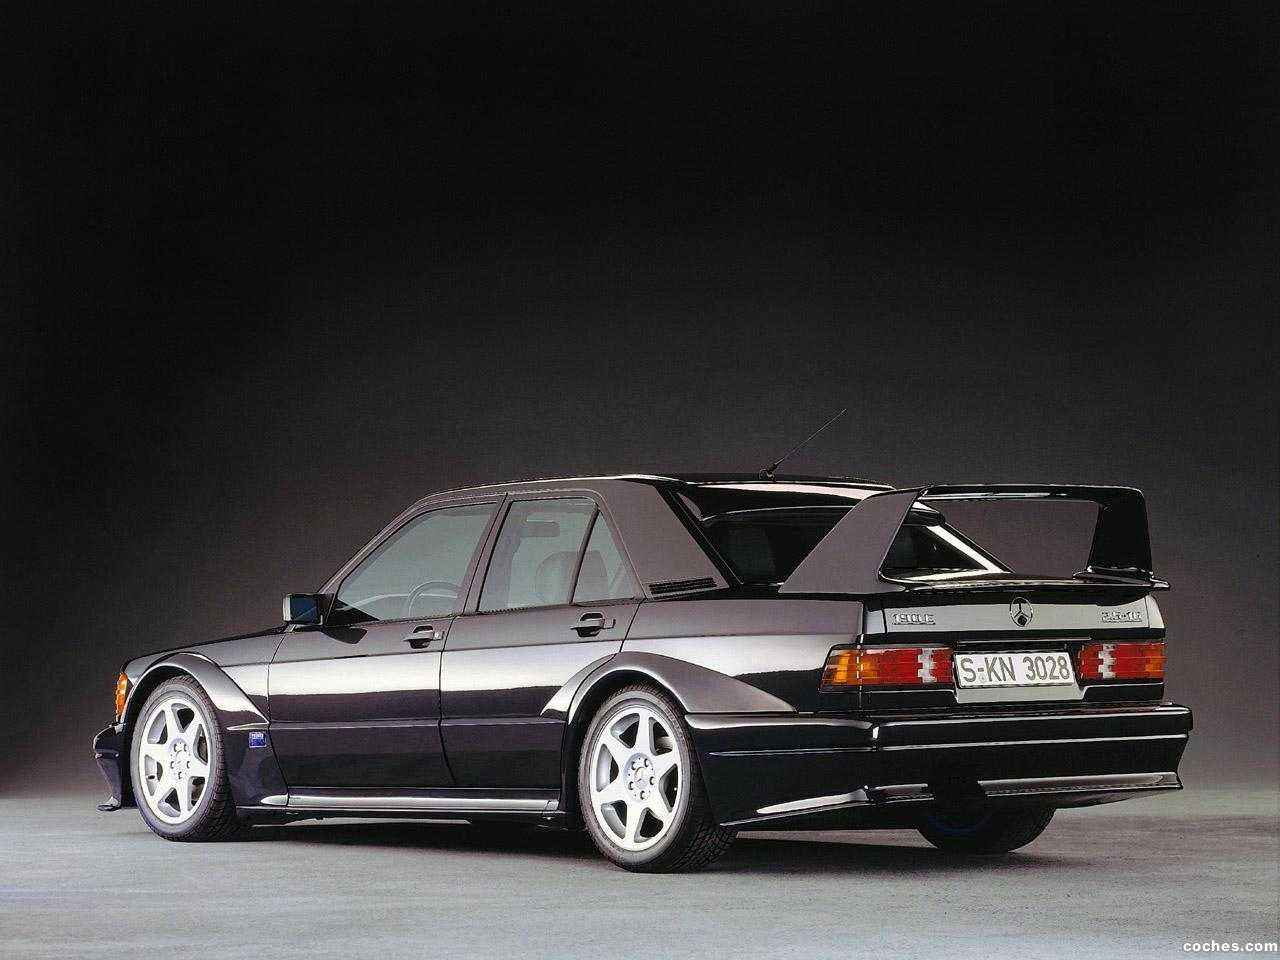 Foto 4 de Mercedes 190 E 2-5 16 Evolution II W201 1990